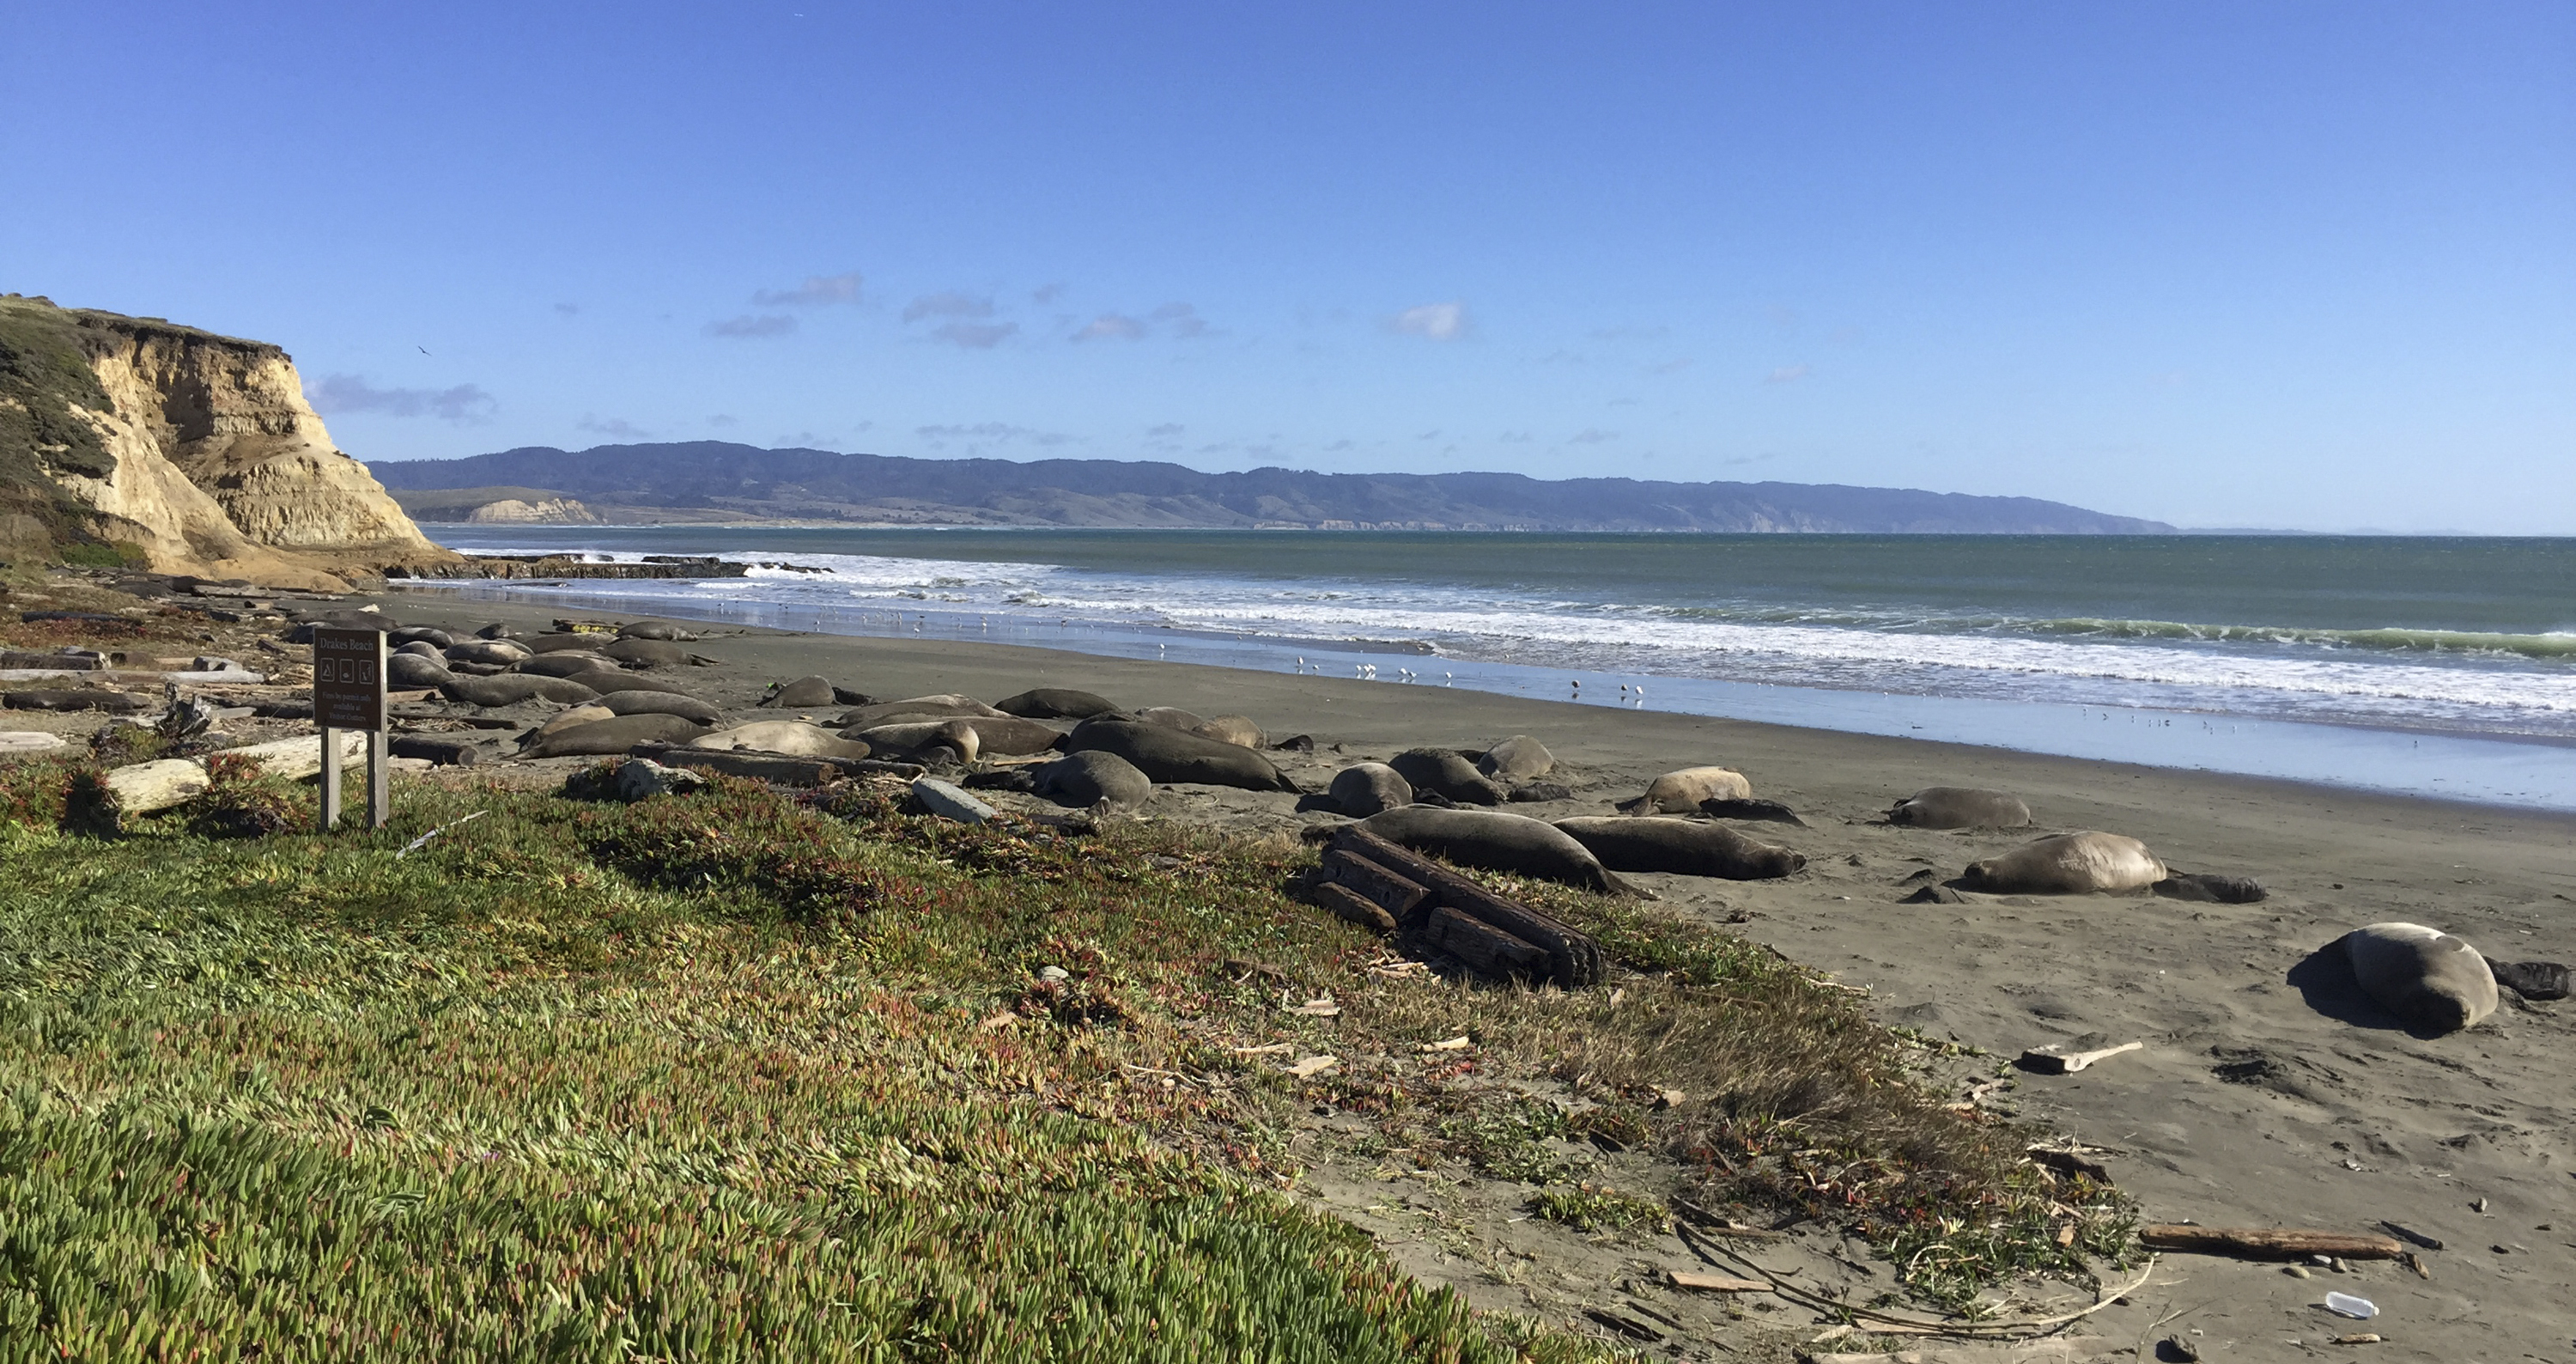 Photo taken Jan. 21, 2019, provided by the Point Reyes National Seashore, a colony of elephant seals that took over a beach in Northern California during the government shutdown.